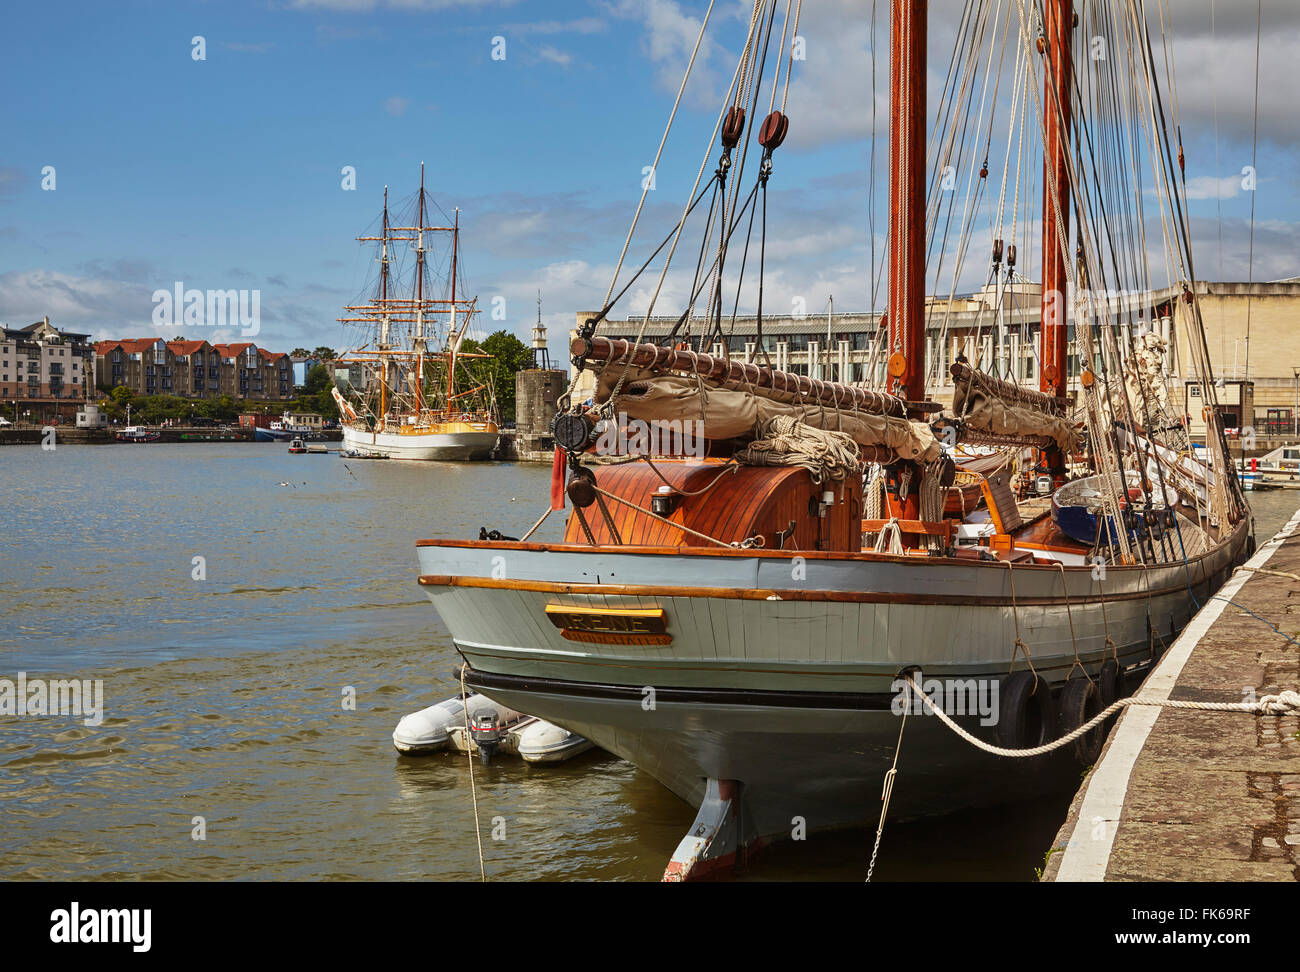 Irene, an old sailing trading ketch in The Docks, Bristol, England, United Kingdom, Europe - Stock Image